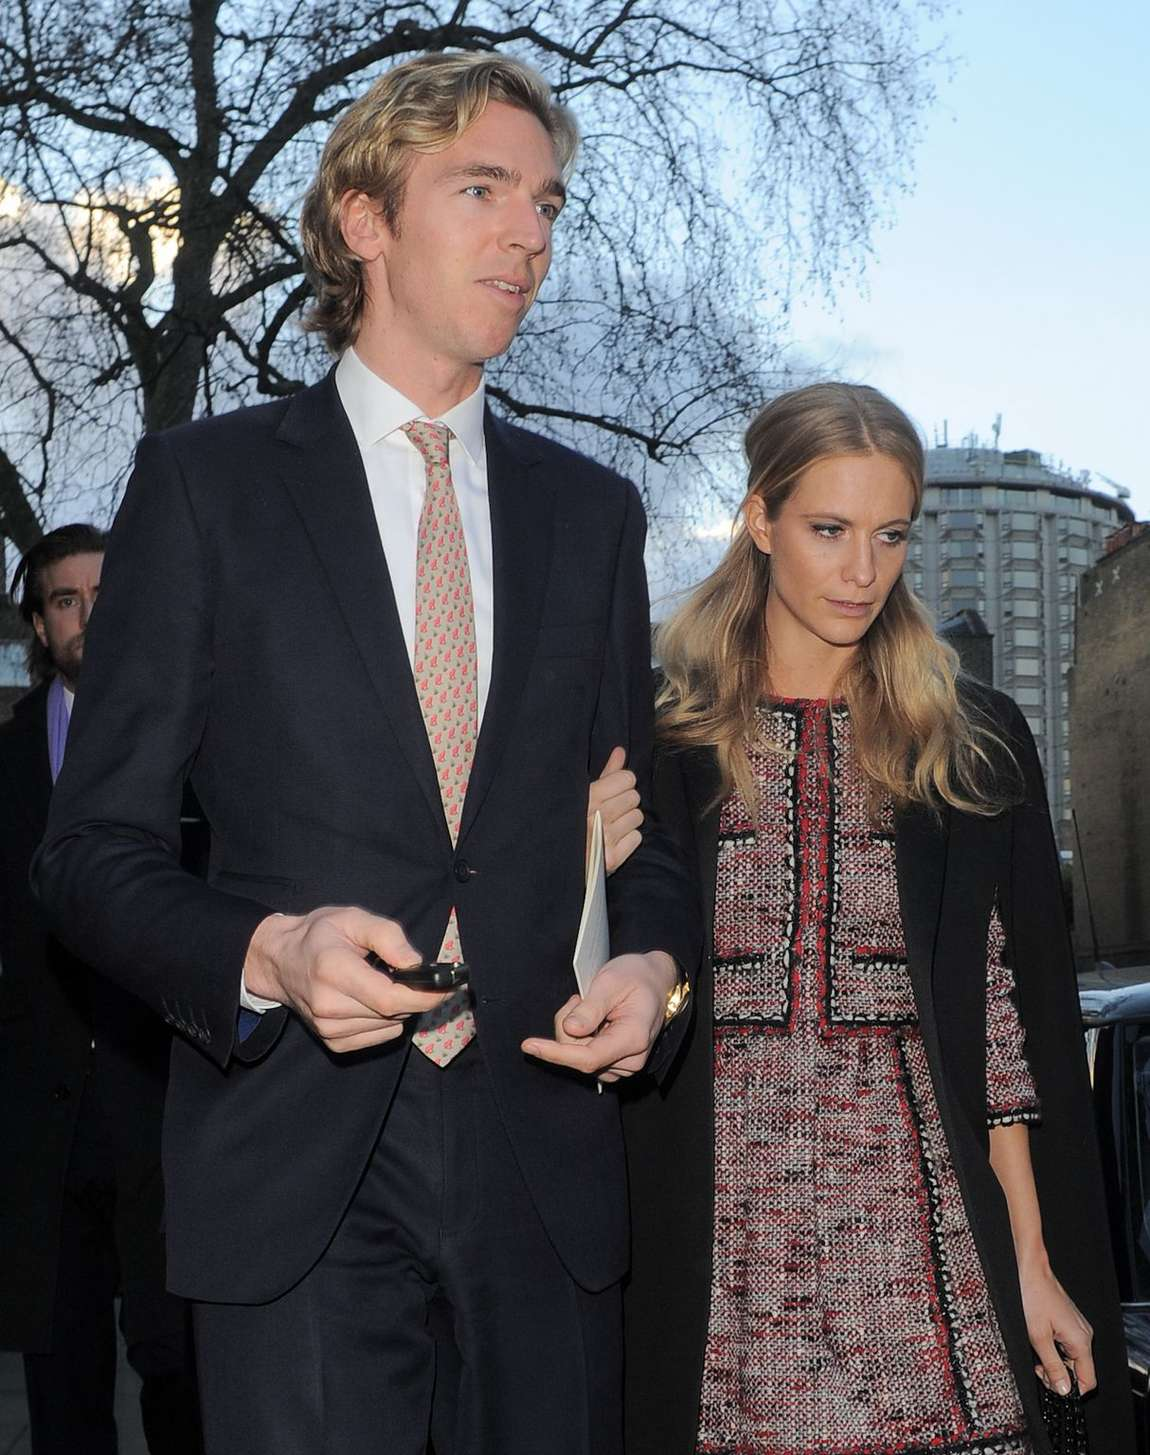 Poppy Delevingne and James Cook Leaving St Pauls Church in London